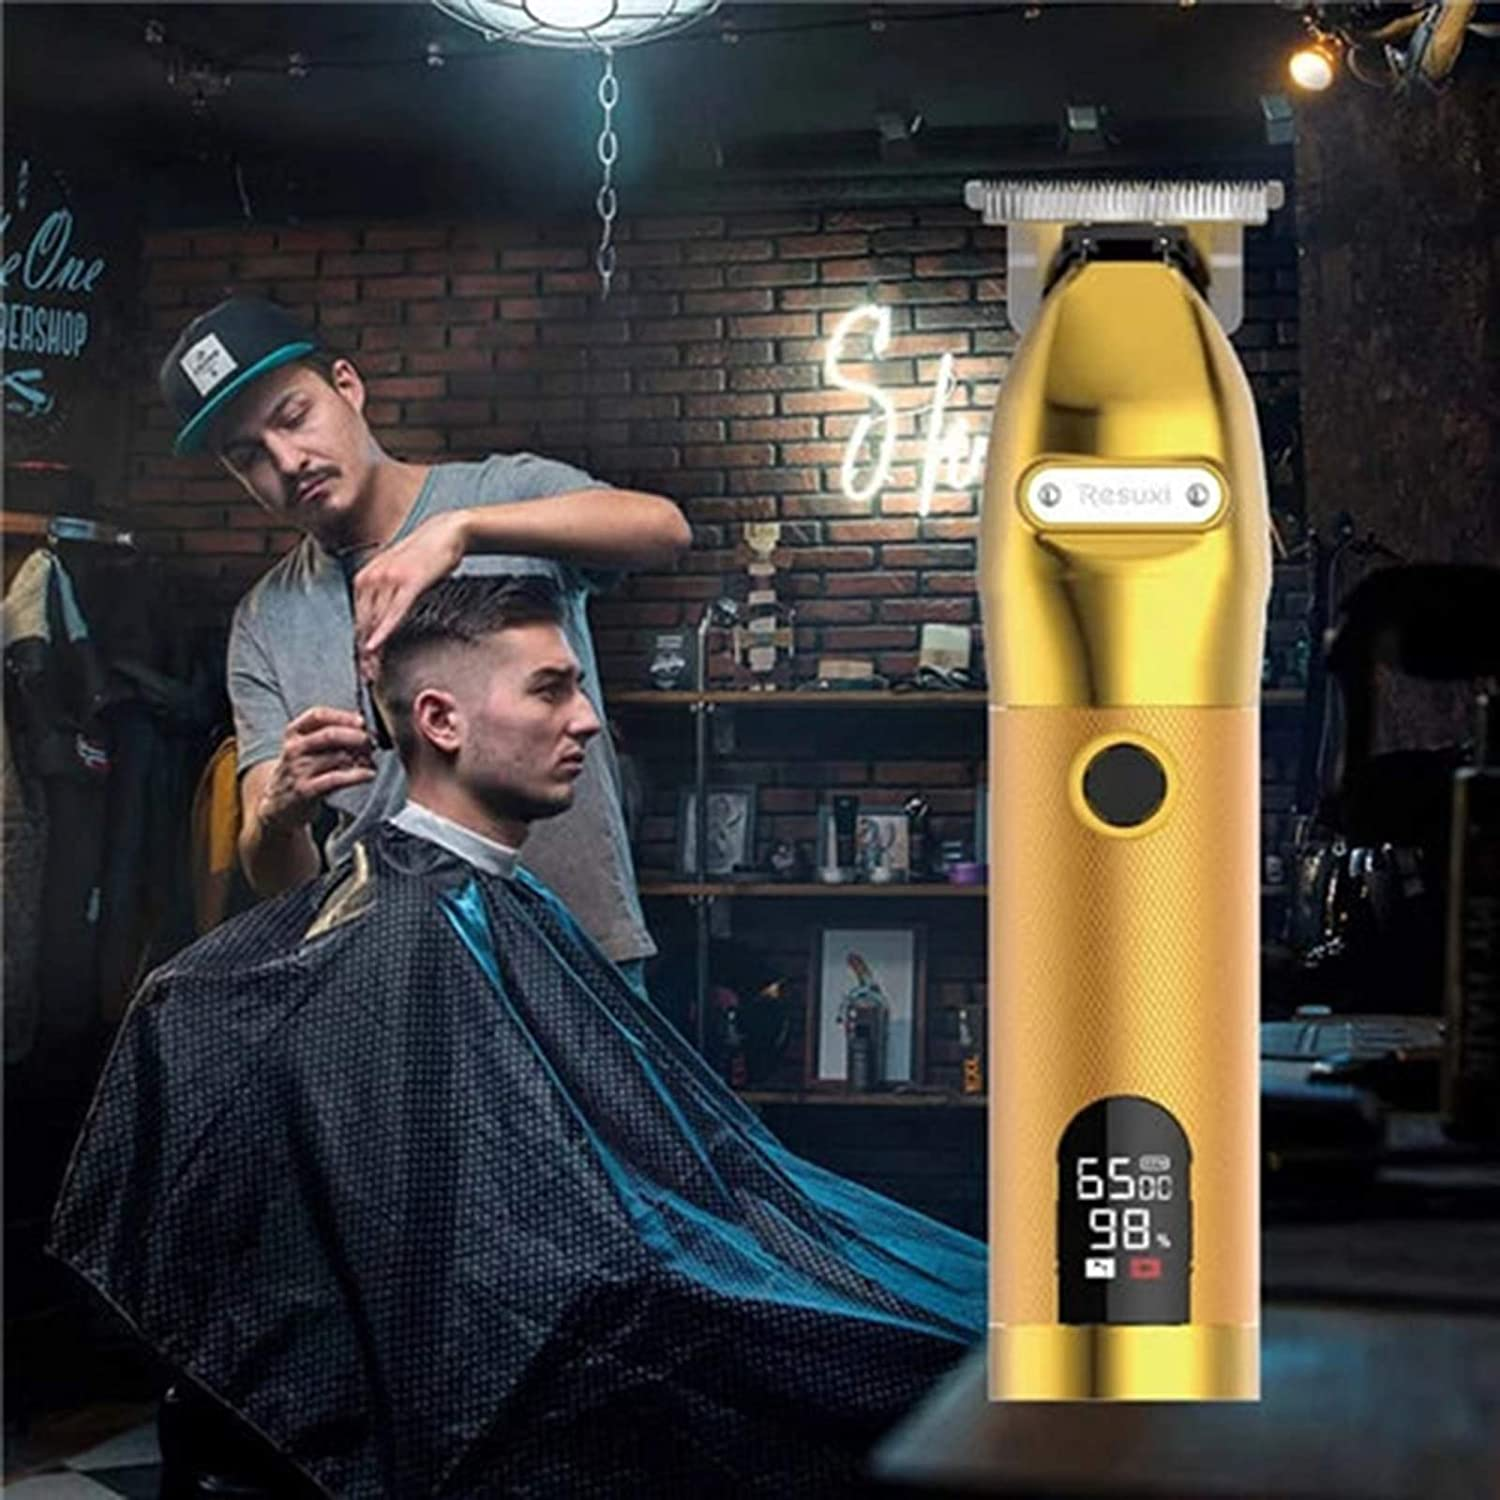 Yutone Gold Skeleton Cordless Hair LCD Display Hai Power Trimmer Manufacturer OFFicial Max 63% OFF shop